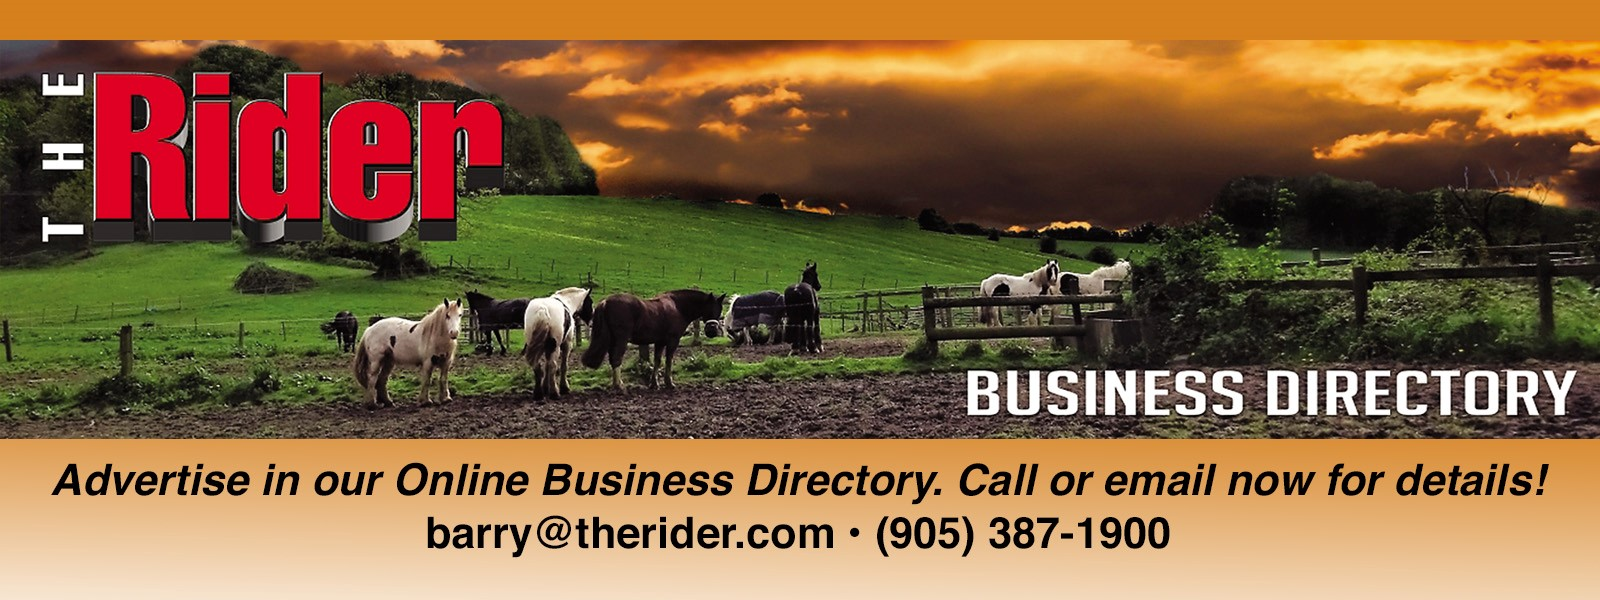 Advertise in The Rider Business Directory